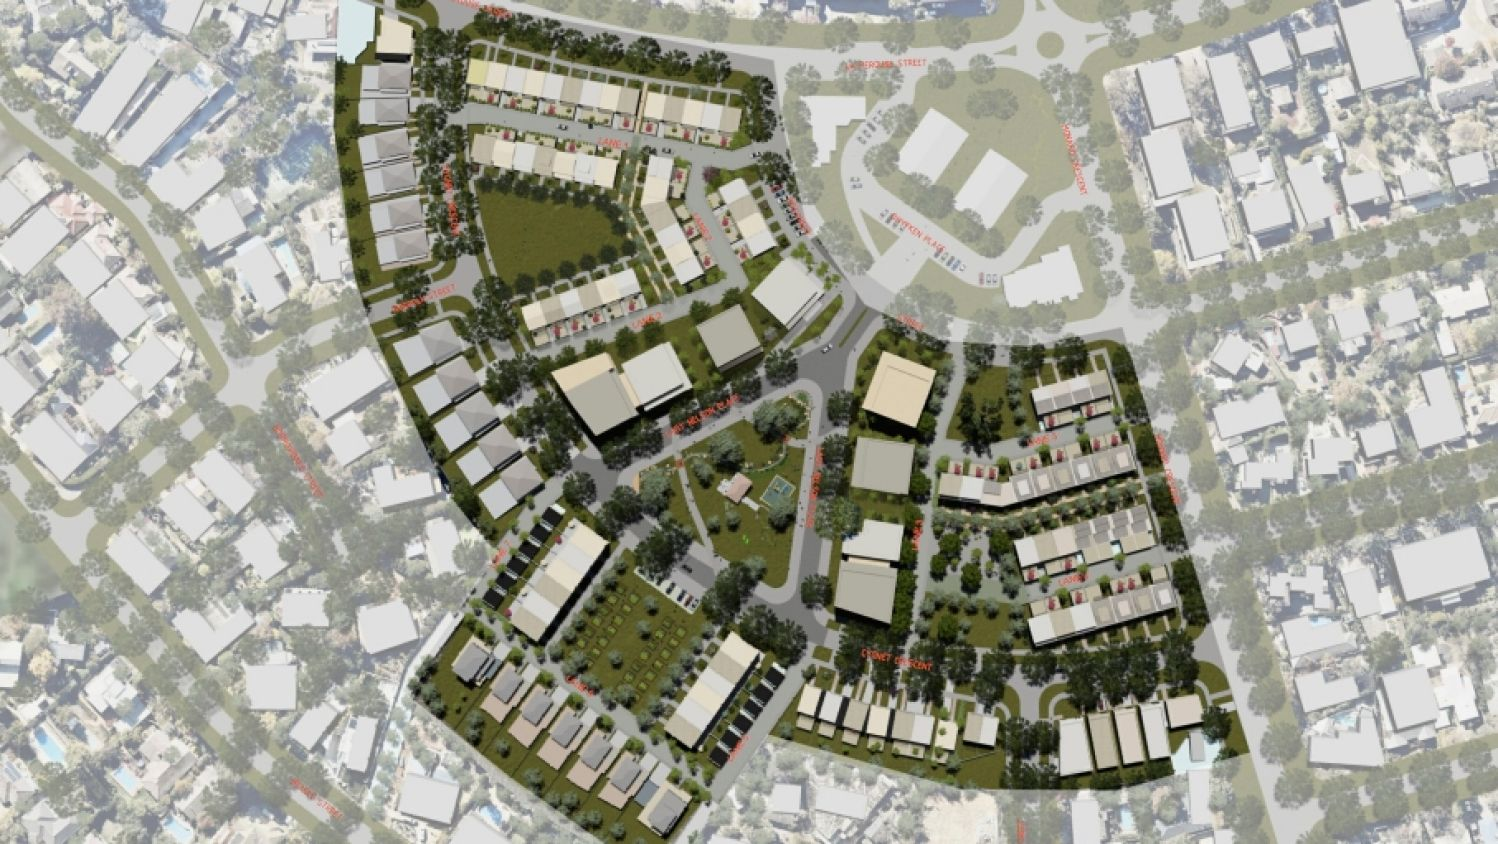 Application lodged for Red Hill public housing precinct redevelopment